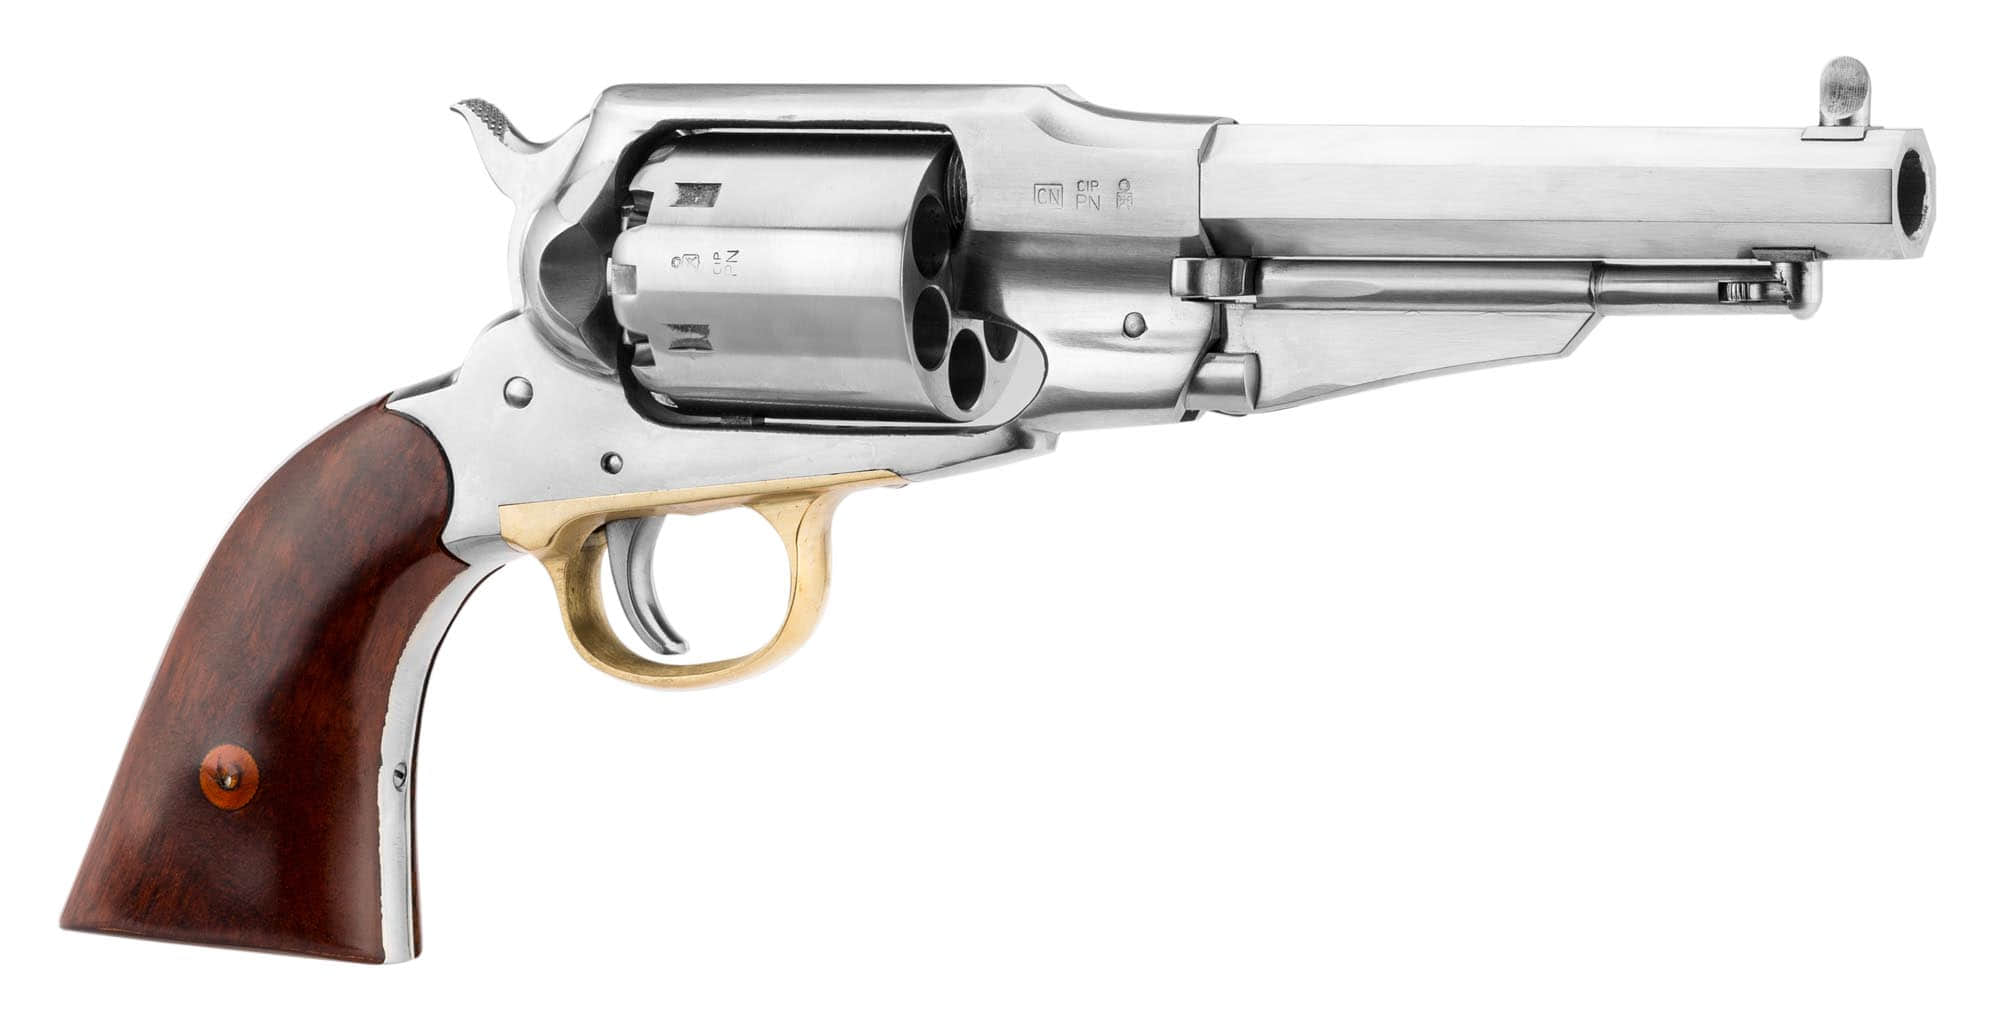 RE266-4-REMINGTON 1858 INOX - RE267